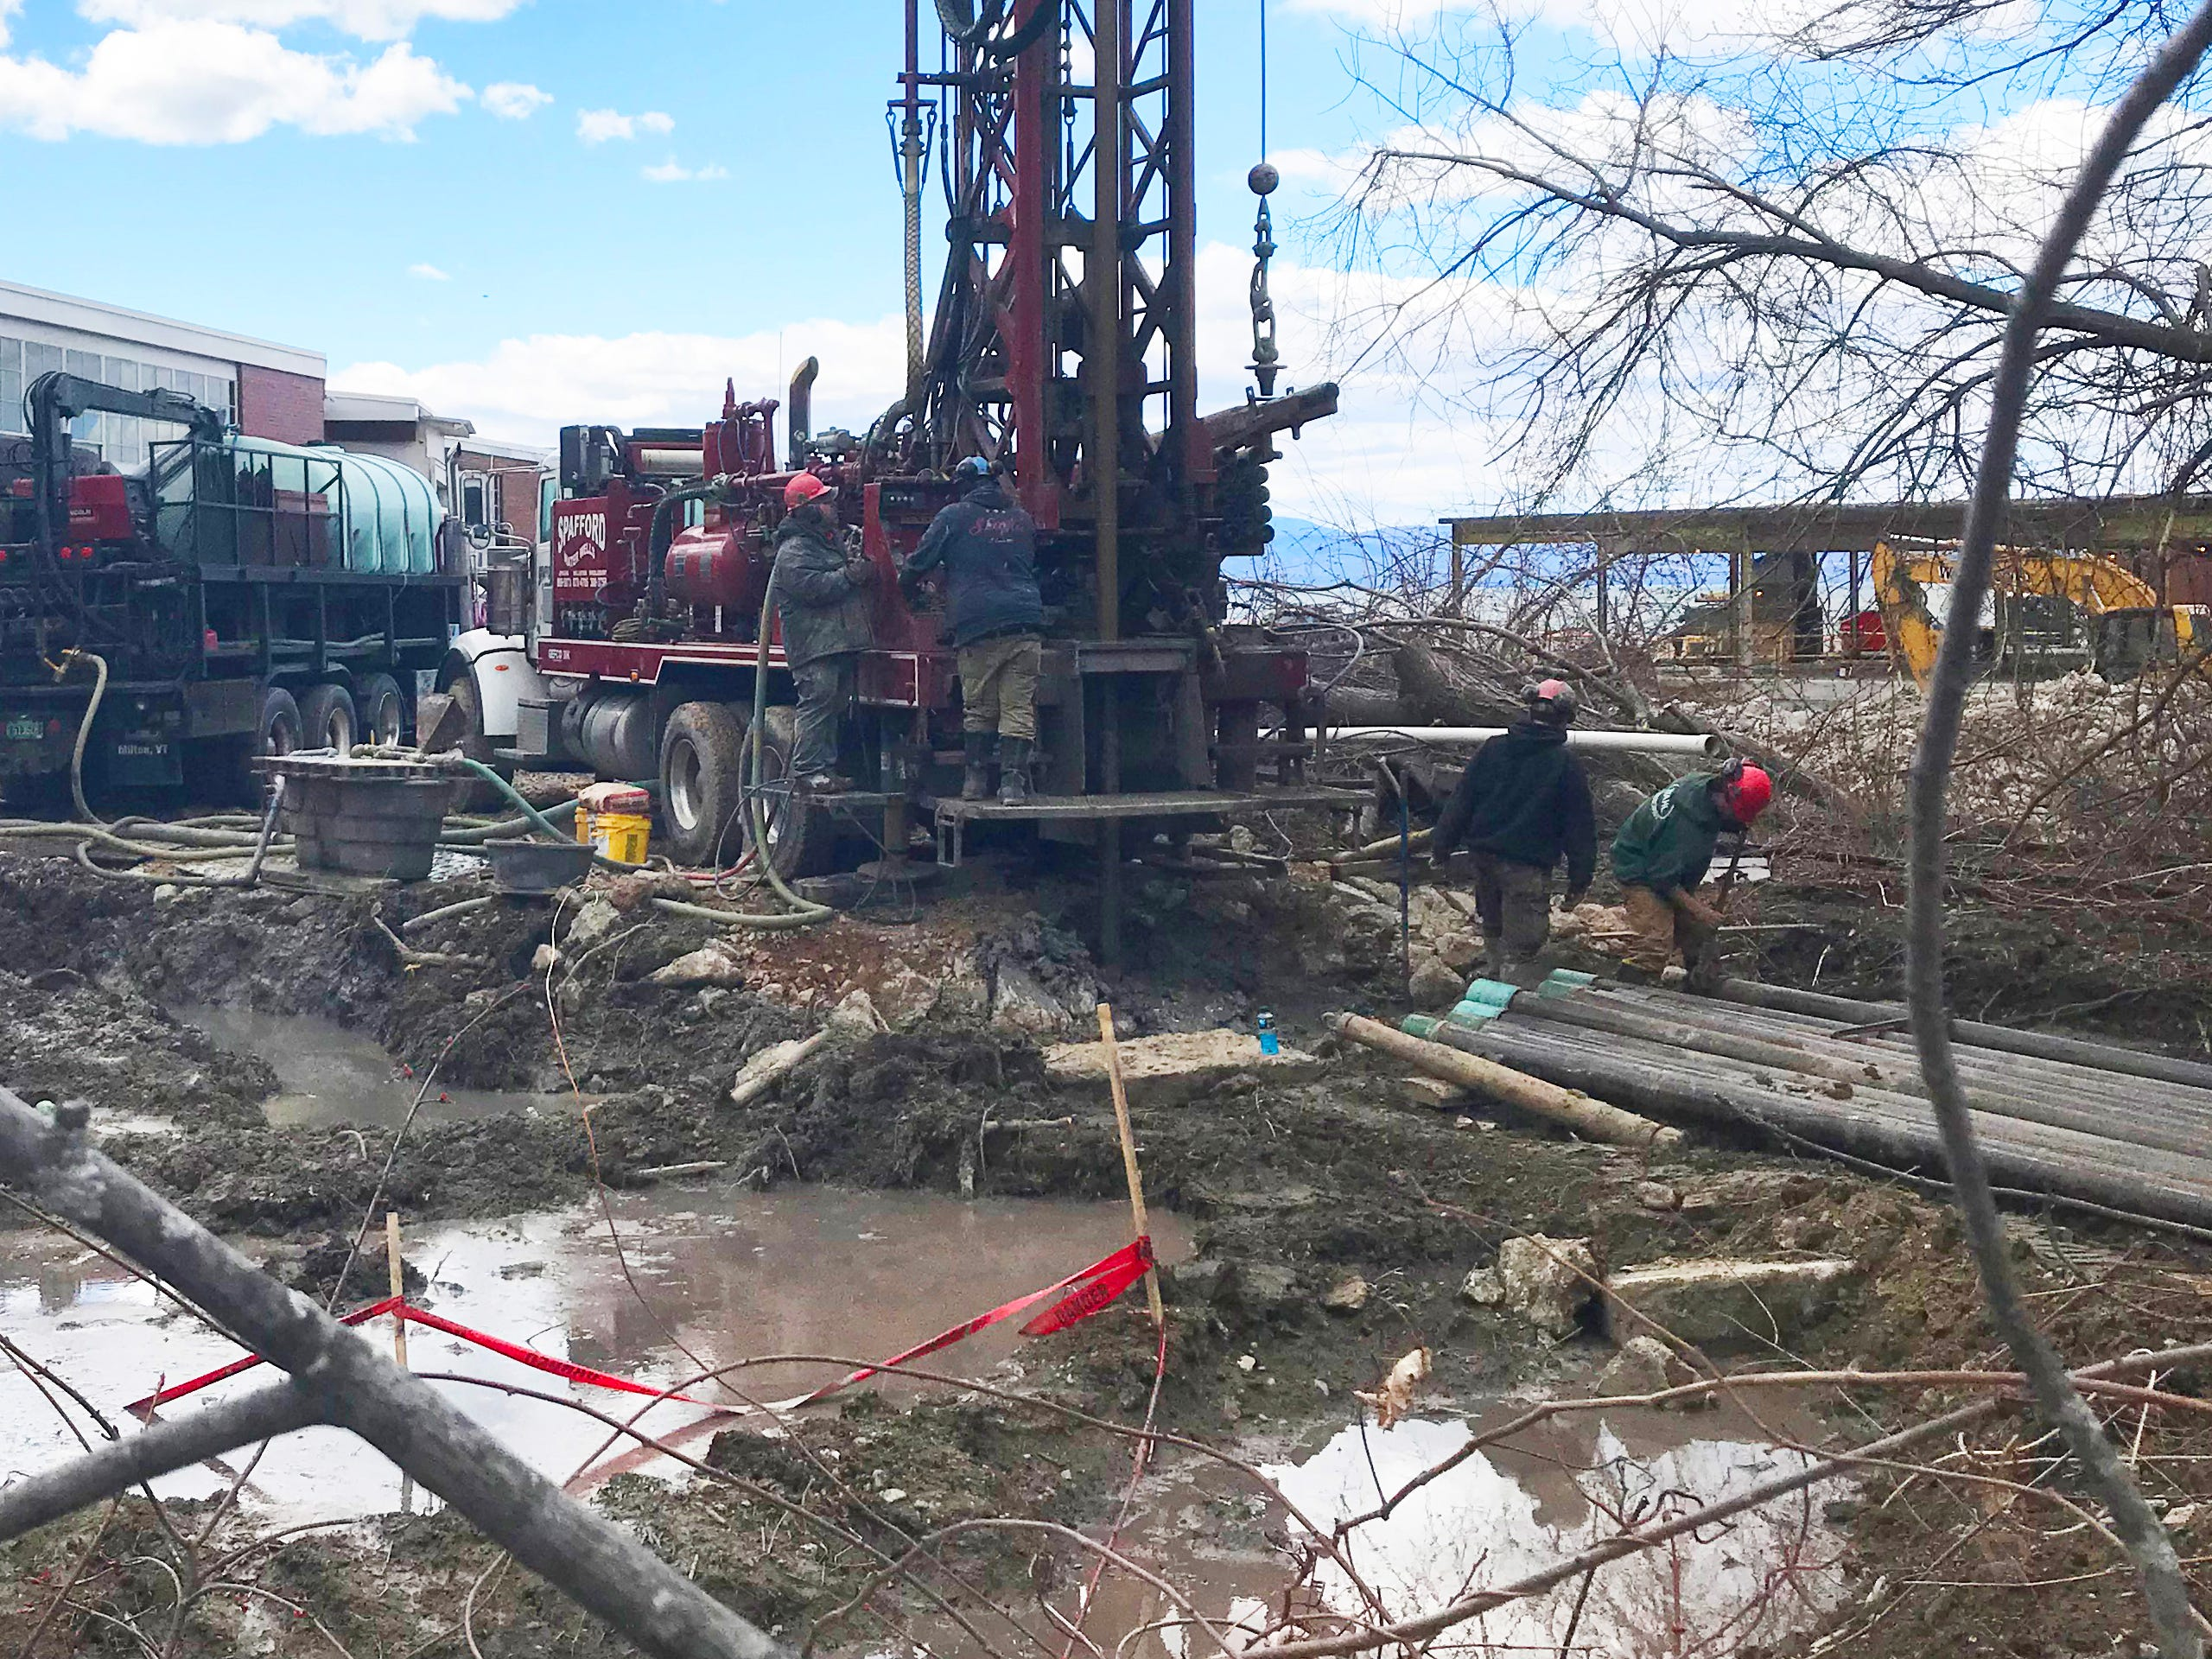 A crew from Spafford & Sons Water Wells operate a drilling rig at Hula Lakeside — the former Blodgett Ovens factory — in Burlington on Tuesday, April 16, 2019.